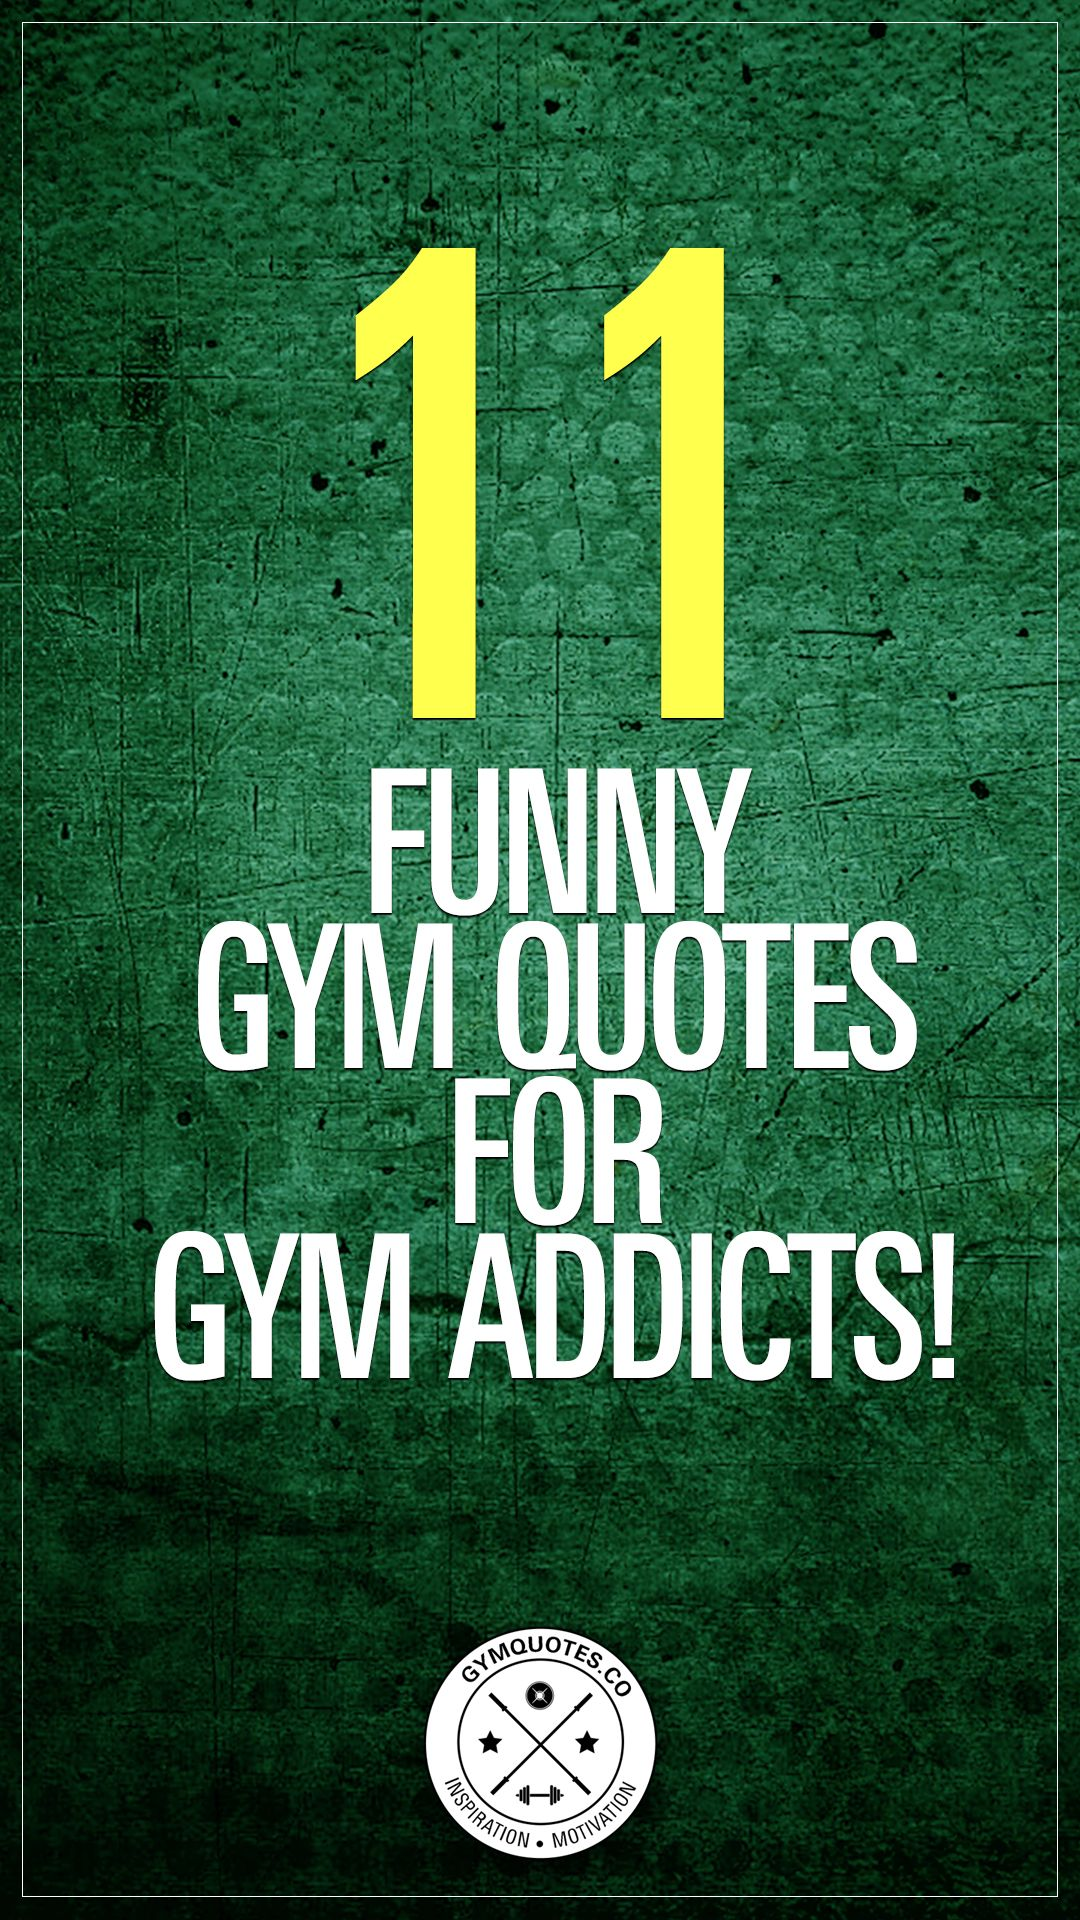 11 Funny Gym Quotes For Gym Addicts Check Out These Funny Gym Quotes About Being A Gym And Fitness Addi Funny Gym Quotes Yoga Quotes Funny Friday Quotes Funny